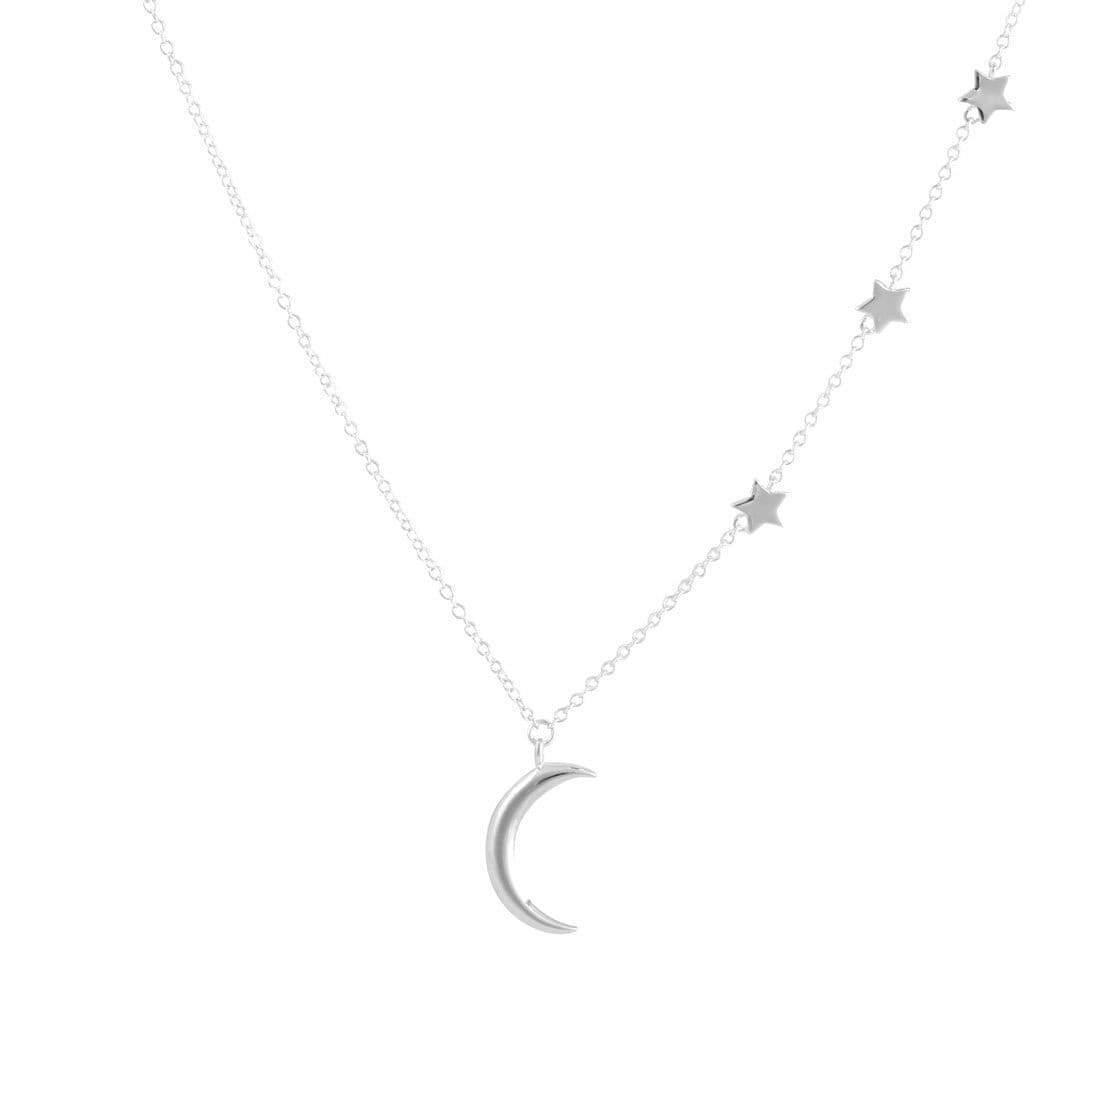 Midsummer Star Necklaces Trail Of Stars Necklace